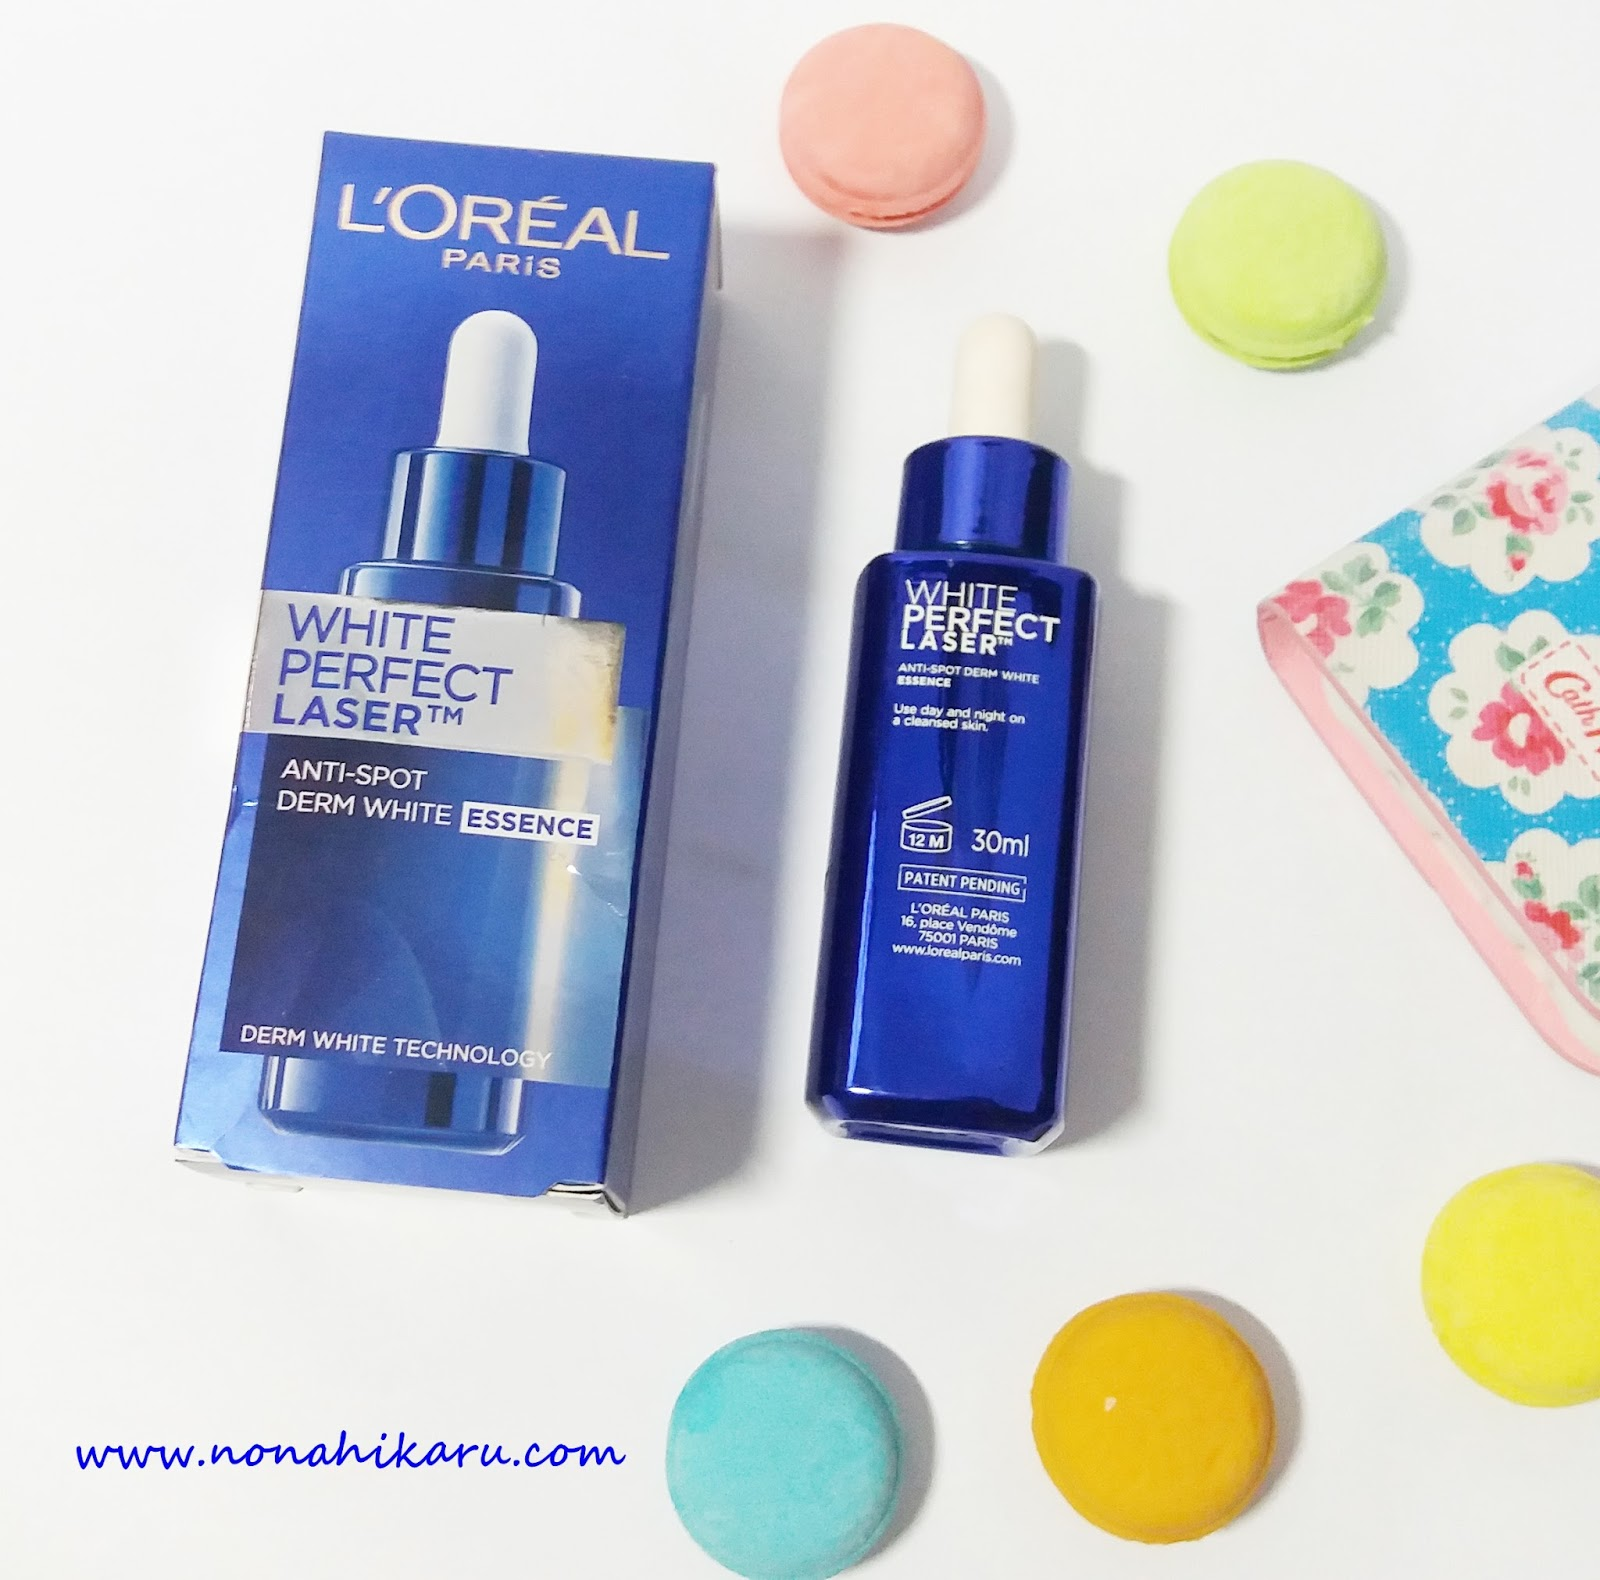 BEAUTY REVIEW LOREAL PARIS WHITE PERFECT LASER